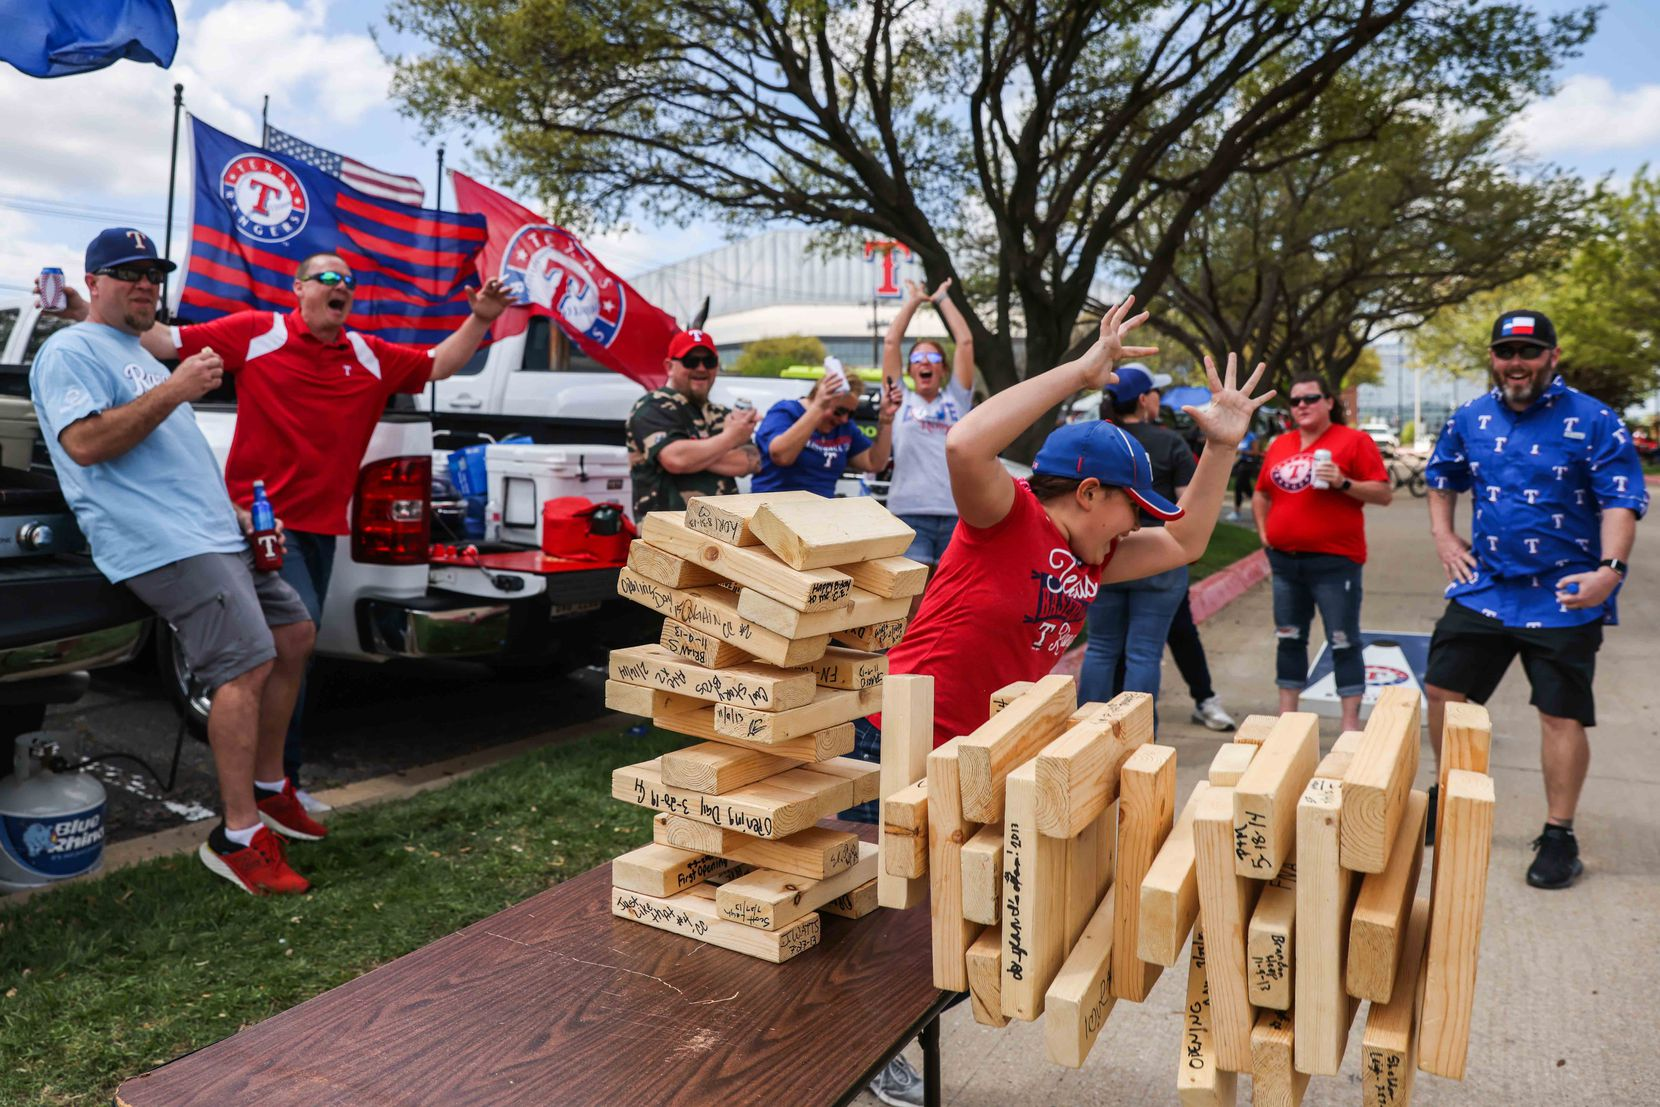 Sylar Watts, 11, reacts along with people around  as the Jenga tower falls during a gathering outside the Globe Life Field before the game between Texas Rangers and Toronto Blue Jays on opening day in Arlington, Texas on Monday, April 5, 2021. (Lola Gomez/The Dallas Morning News)